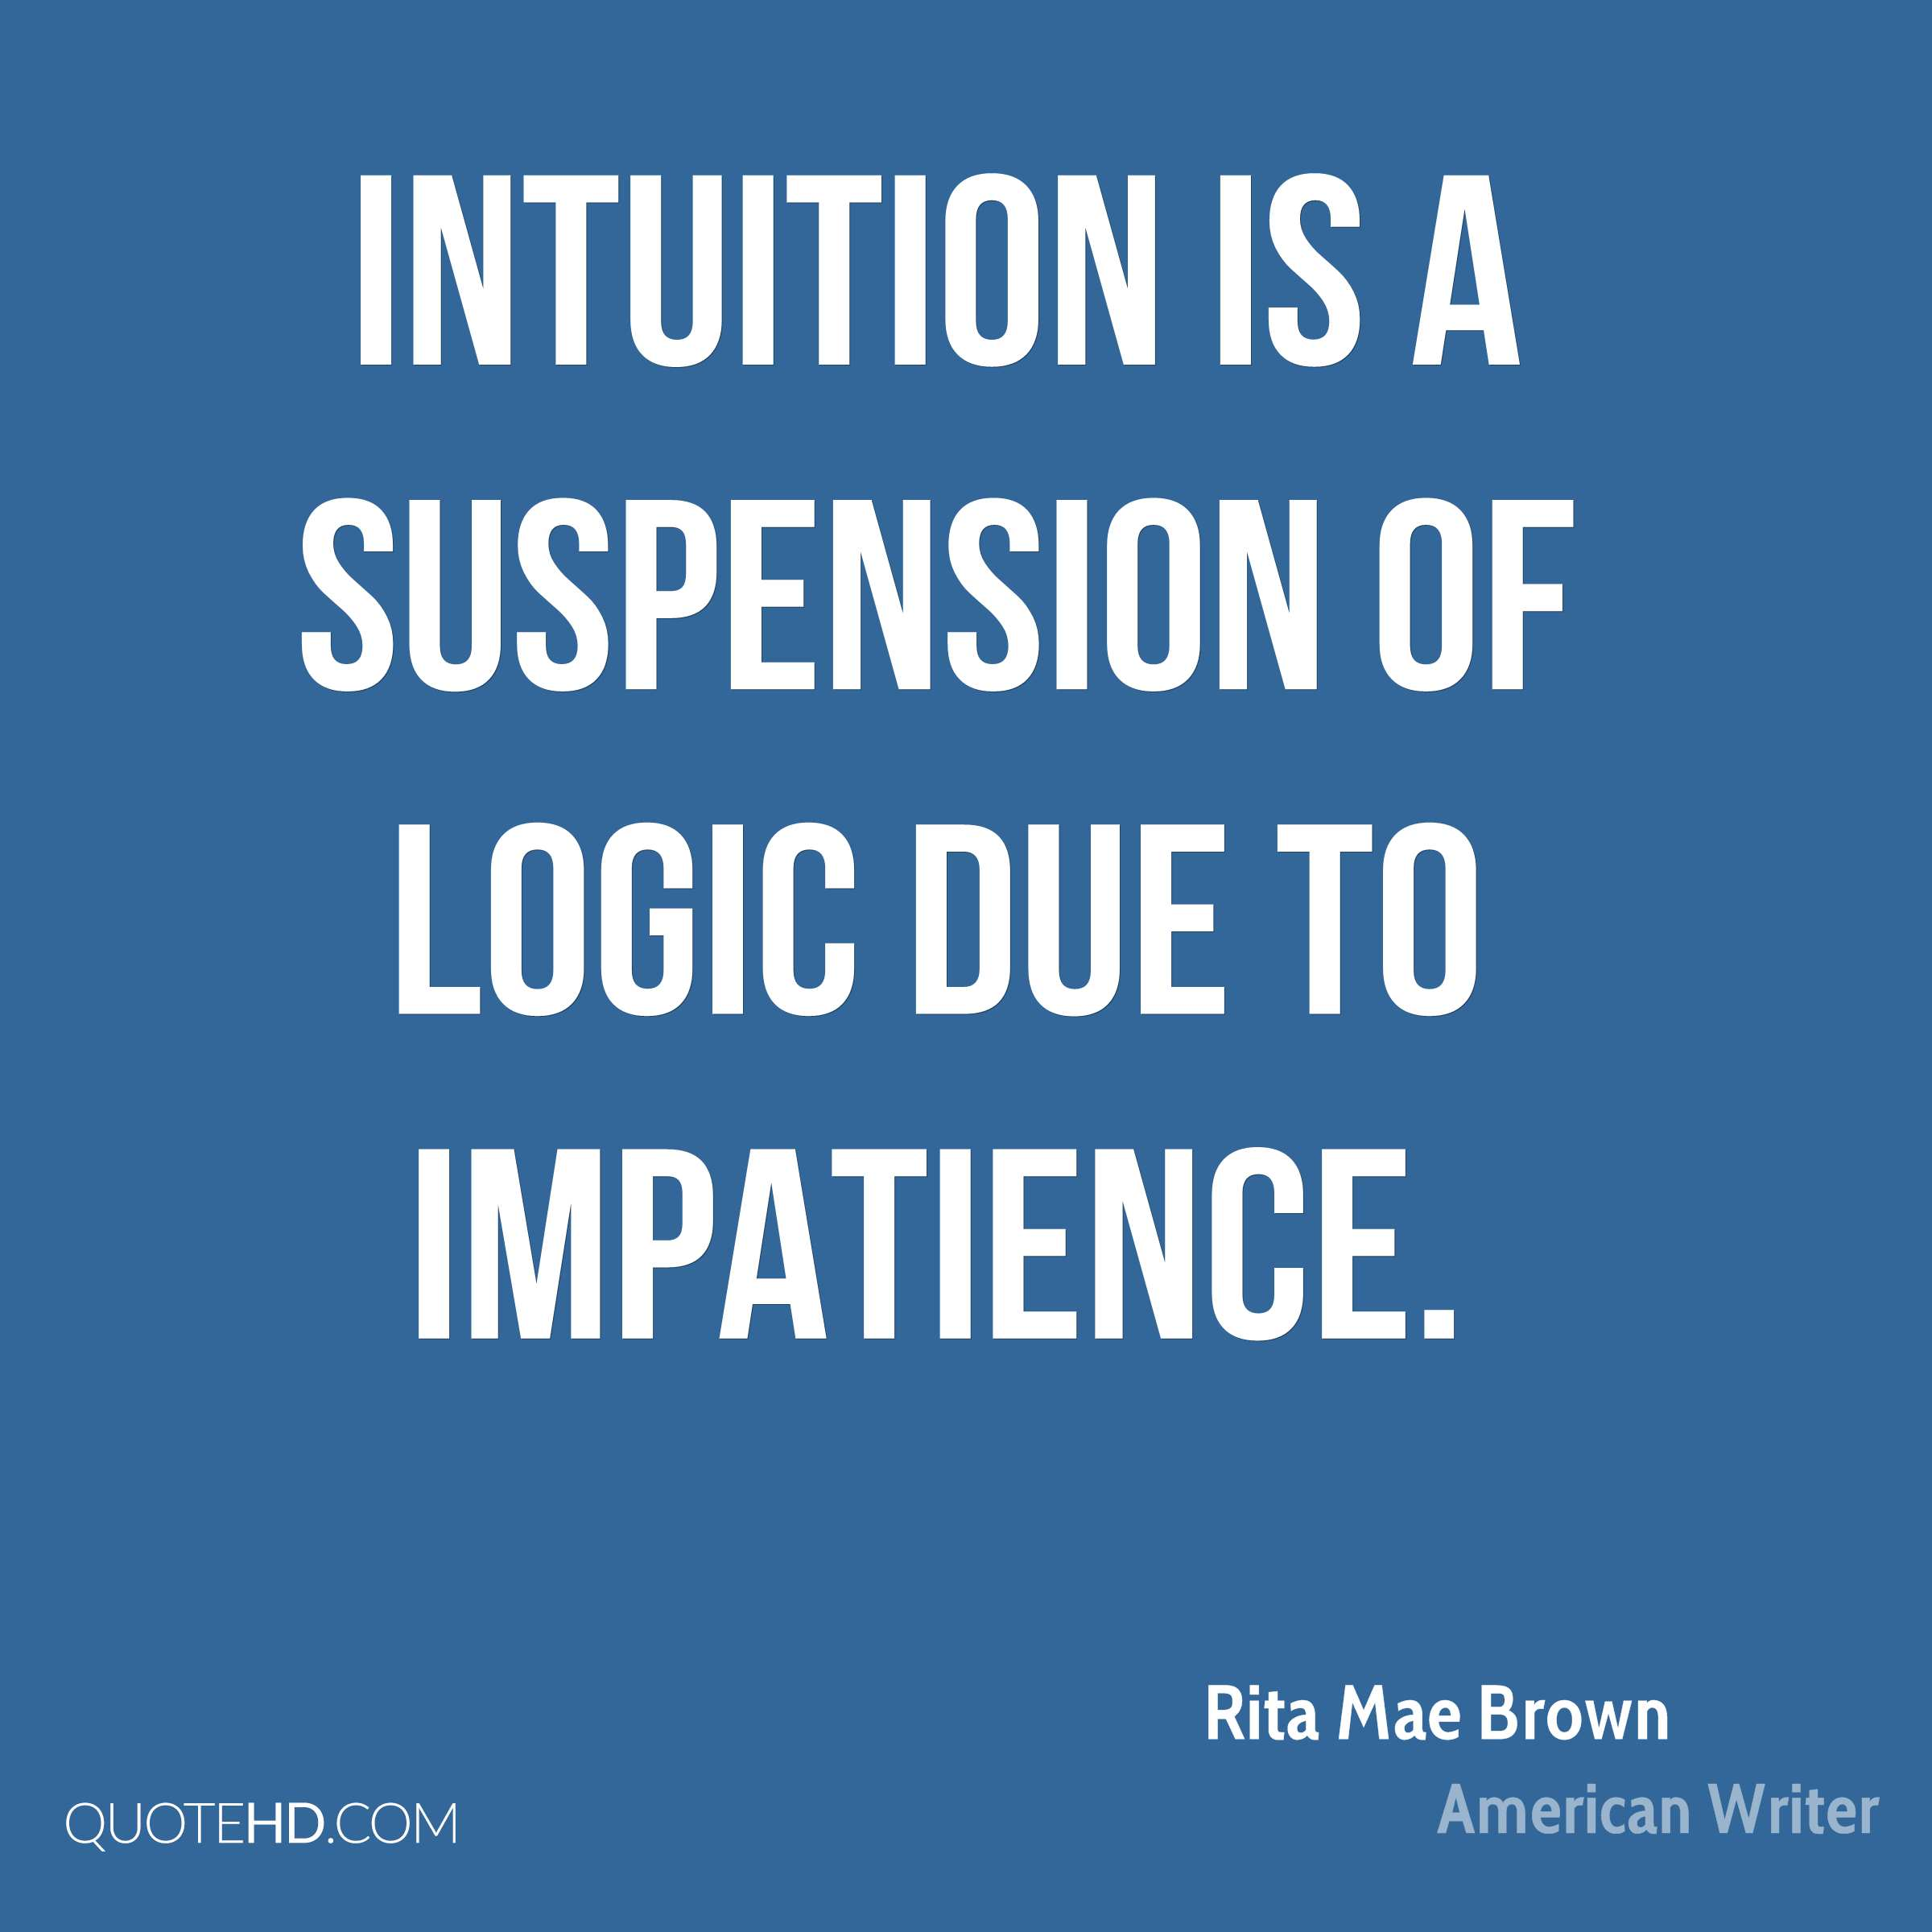 Intuition is a suspension of logic due to impatience.